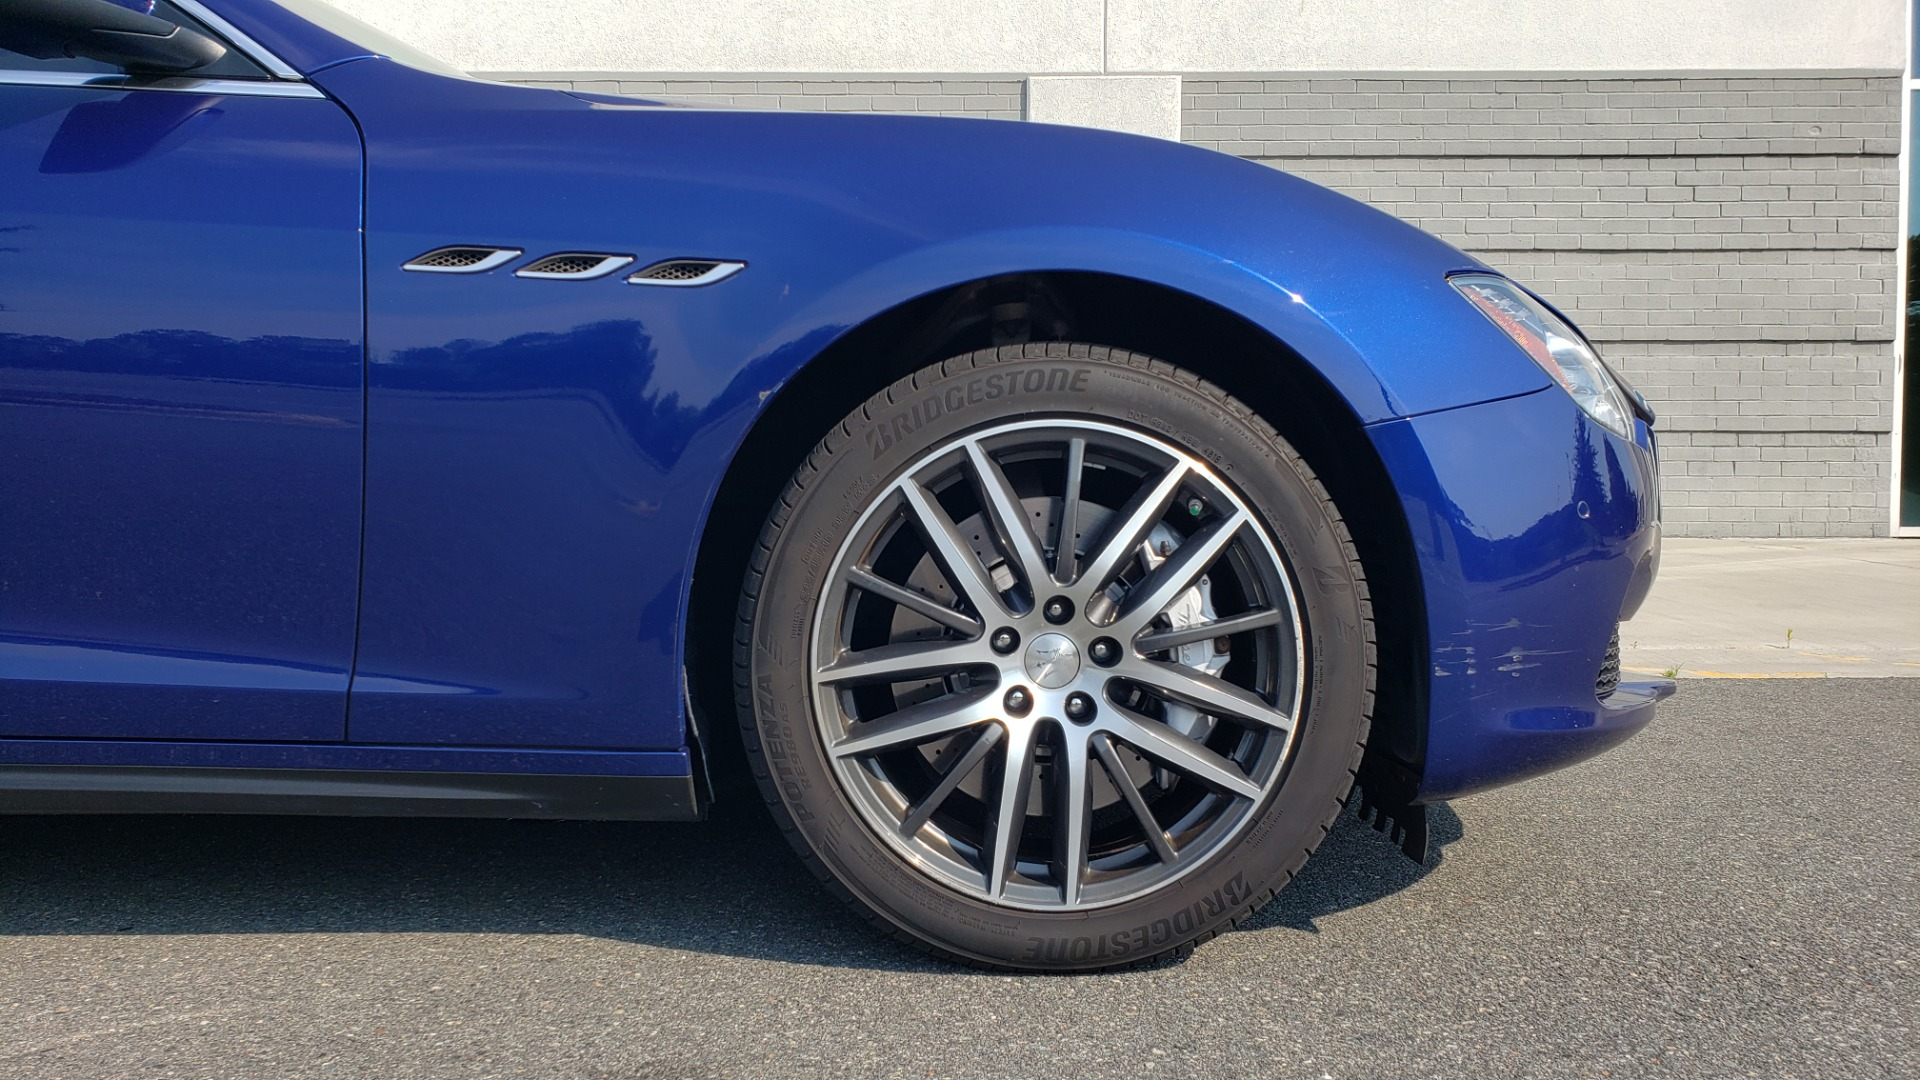 Used 2015 Maserati GHIBLI SEDAN / 3.0L V6 / 8-SPD AUTO / NAV / HTD STS / SUNROOF / REARVIEW for sale $24,495 at Formula Imports in Charlotte NC 28227 85